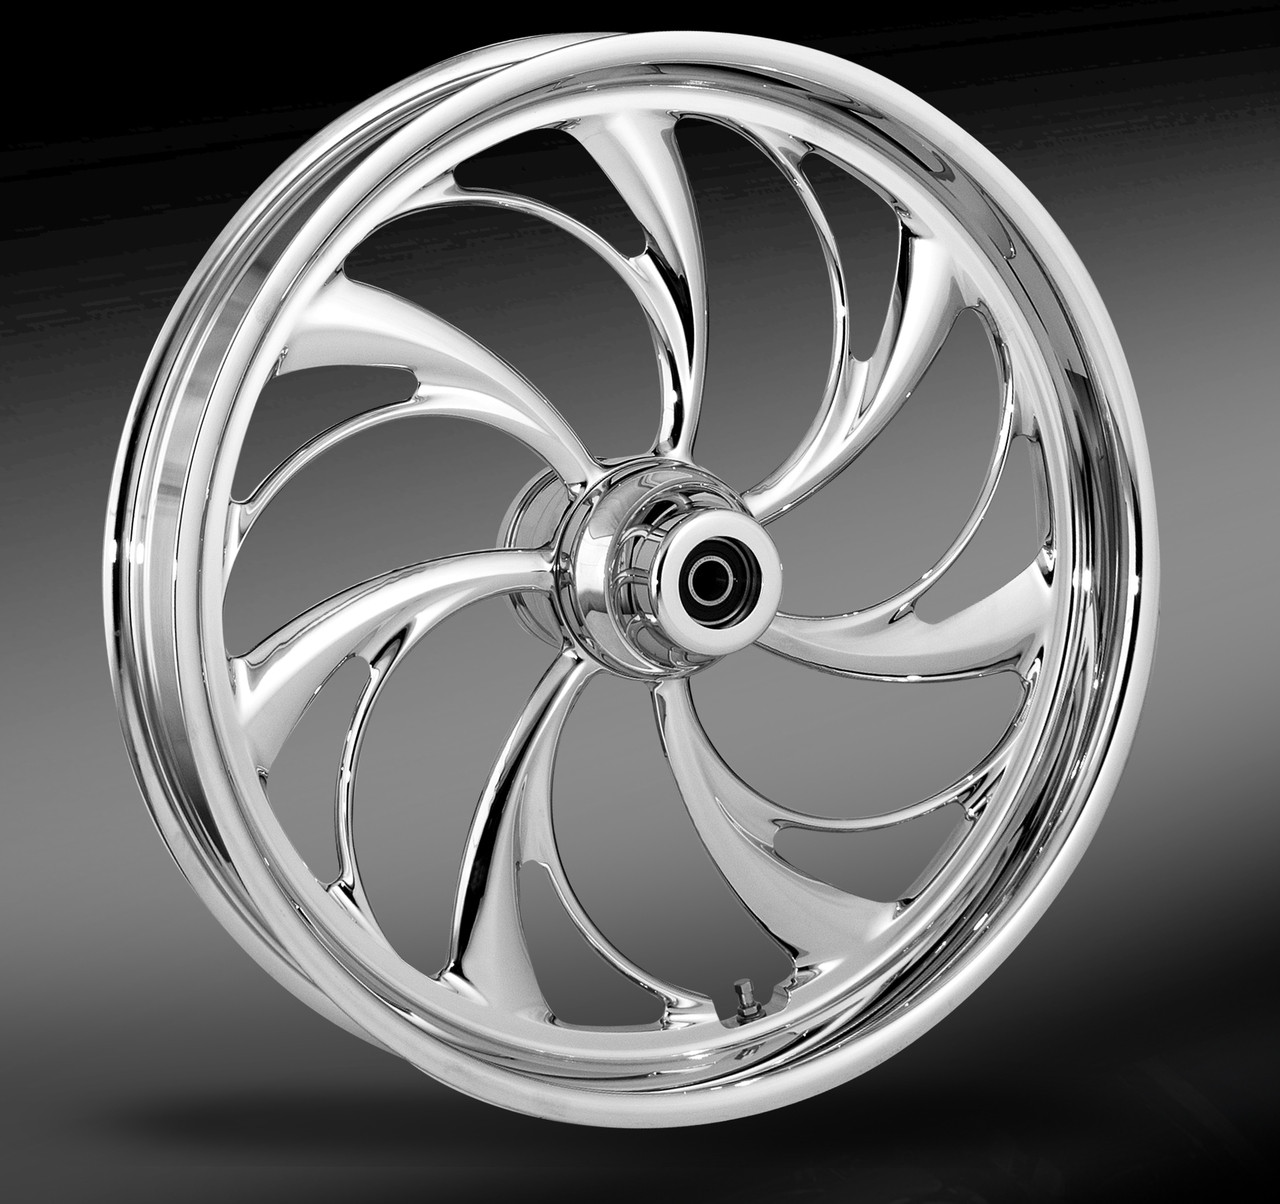 Steel Wheels For Sale >> Chrome Steel Wheels Custom Rims Tires And Rims For Sale Rc